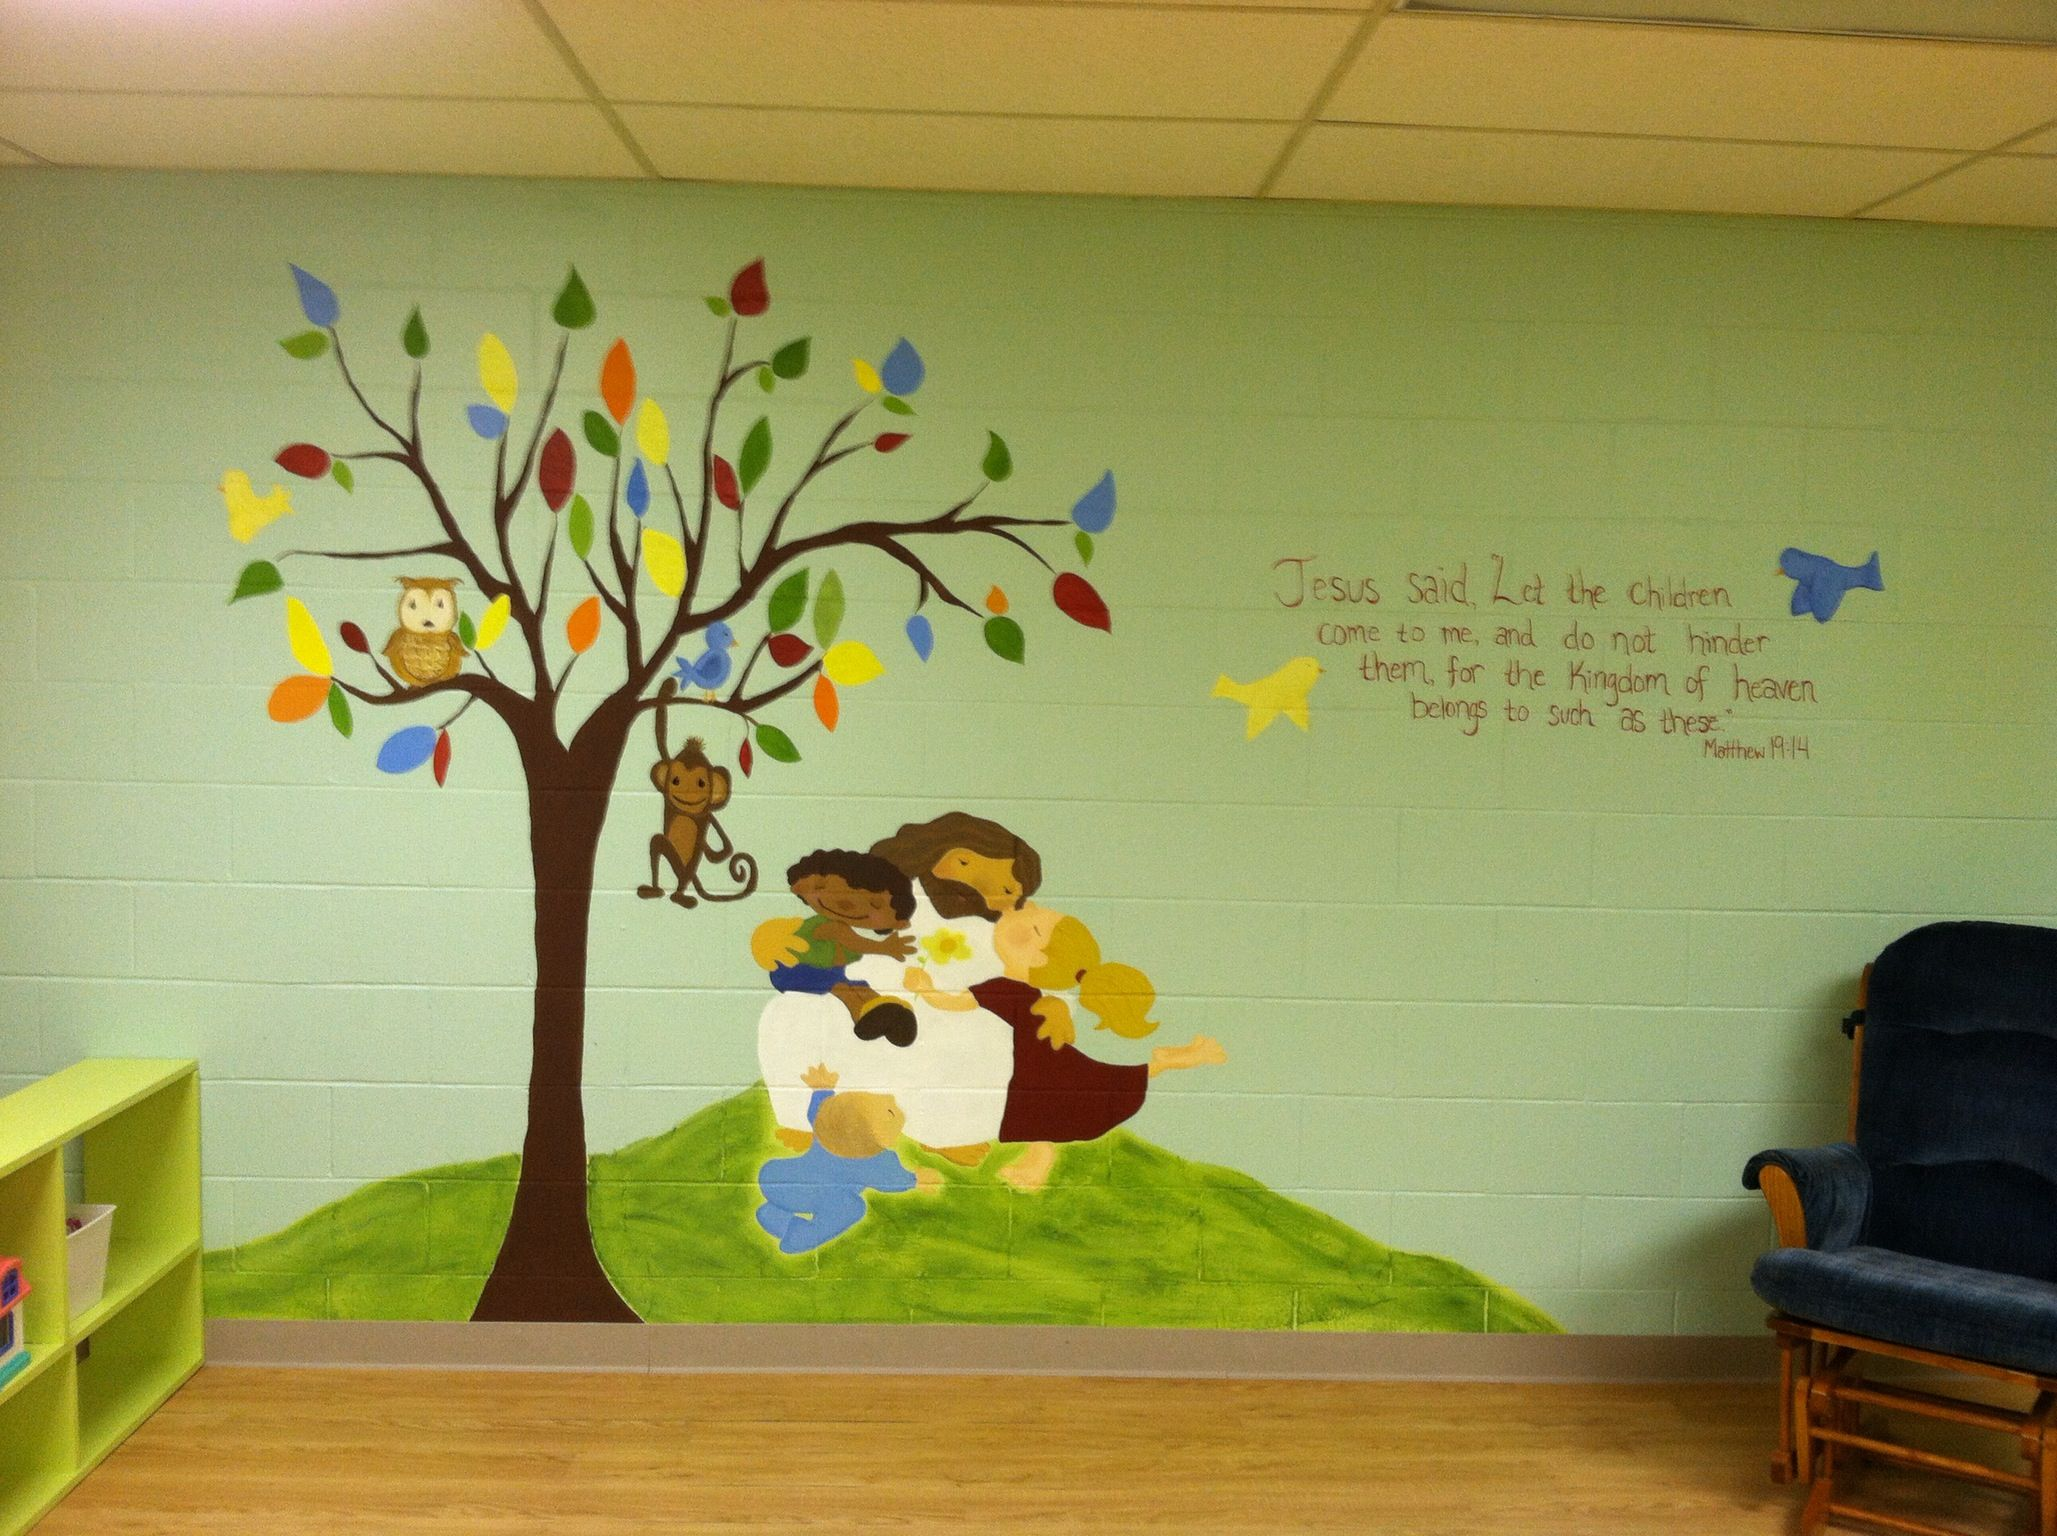 Church nursery mural | Sunday School Room Ideas ...